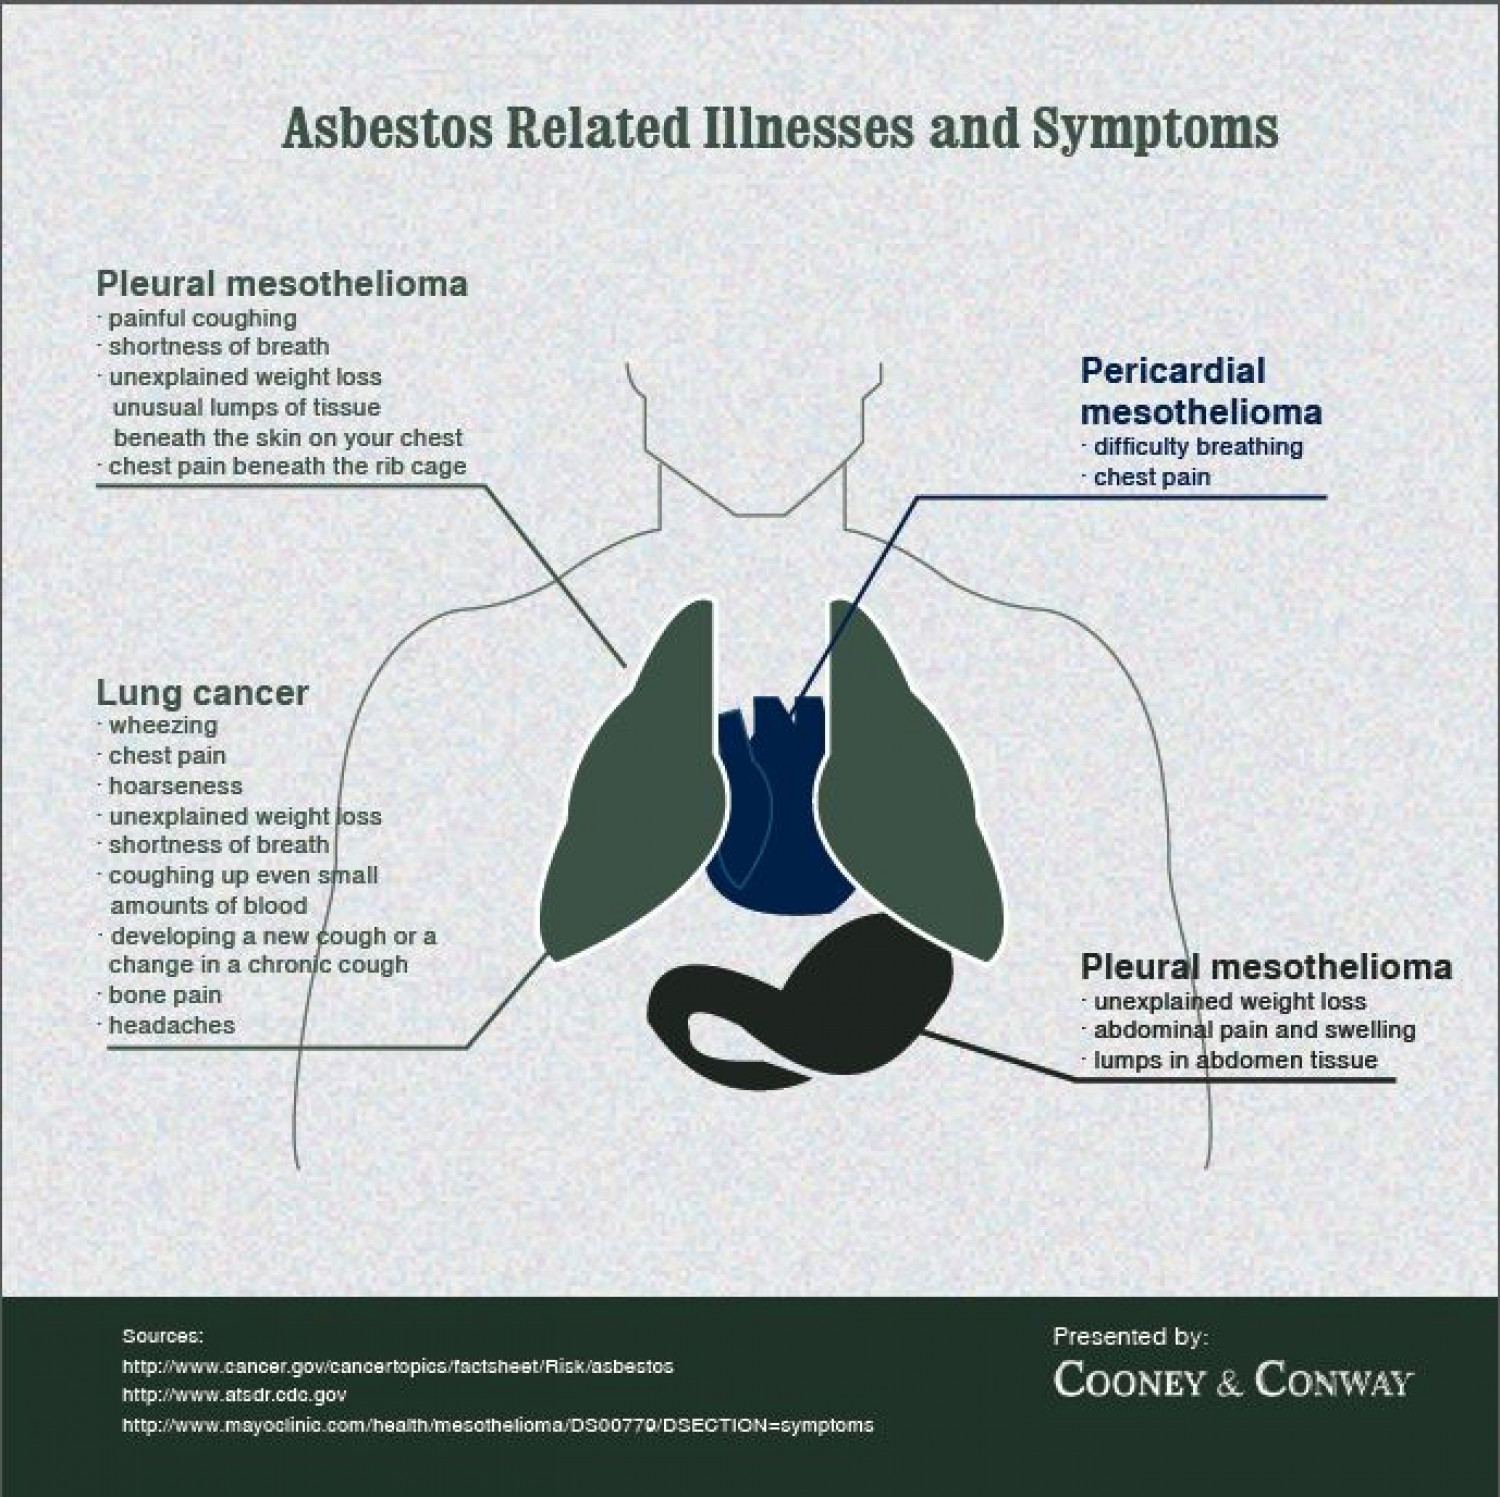 Asbestos Related Illness and Symptoms Infographic